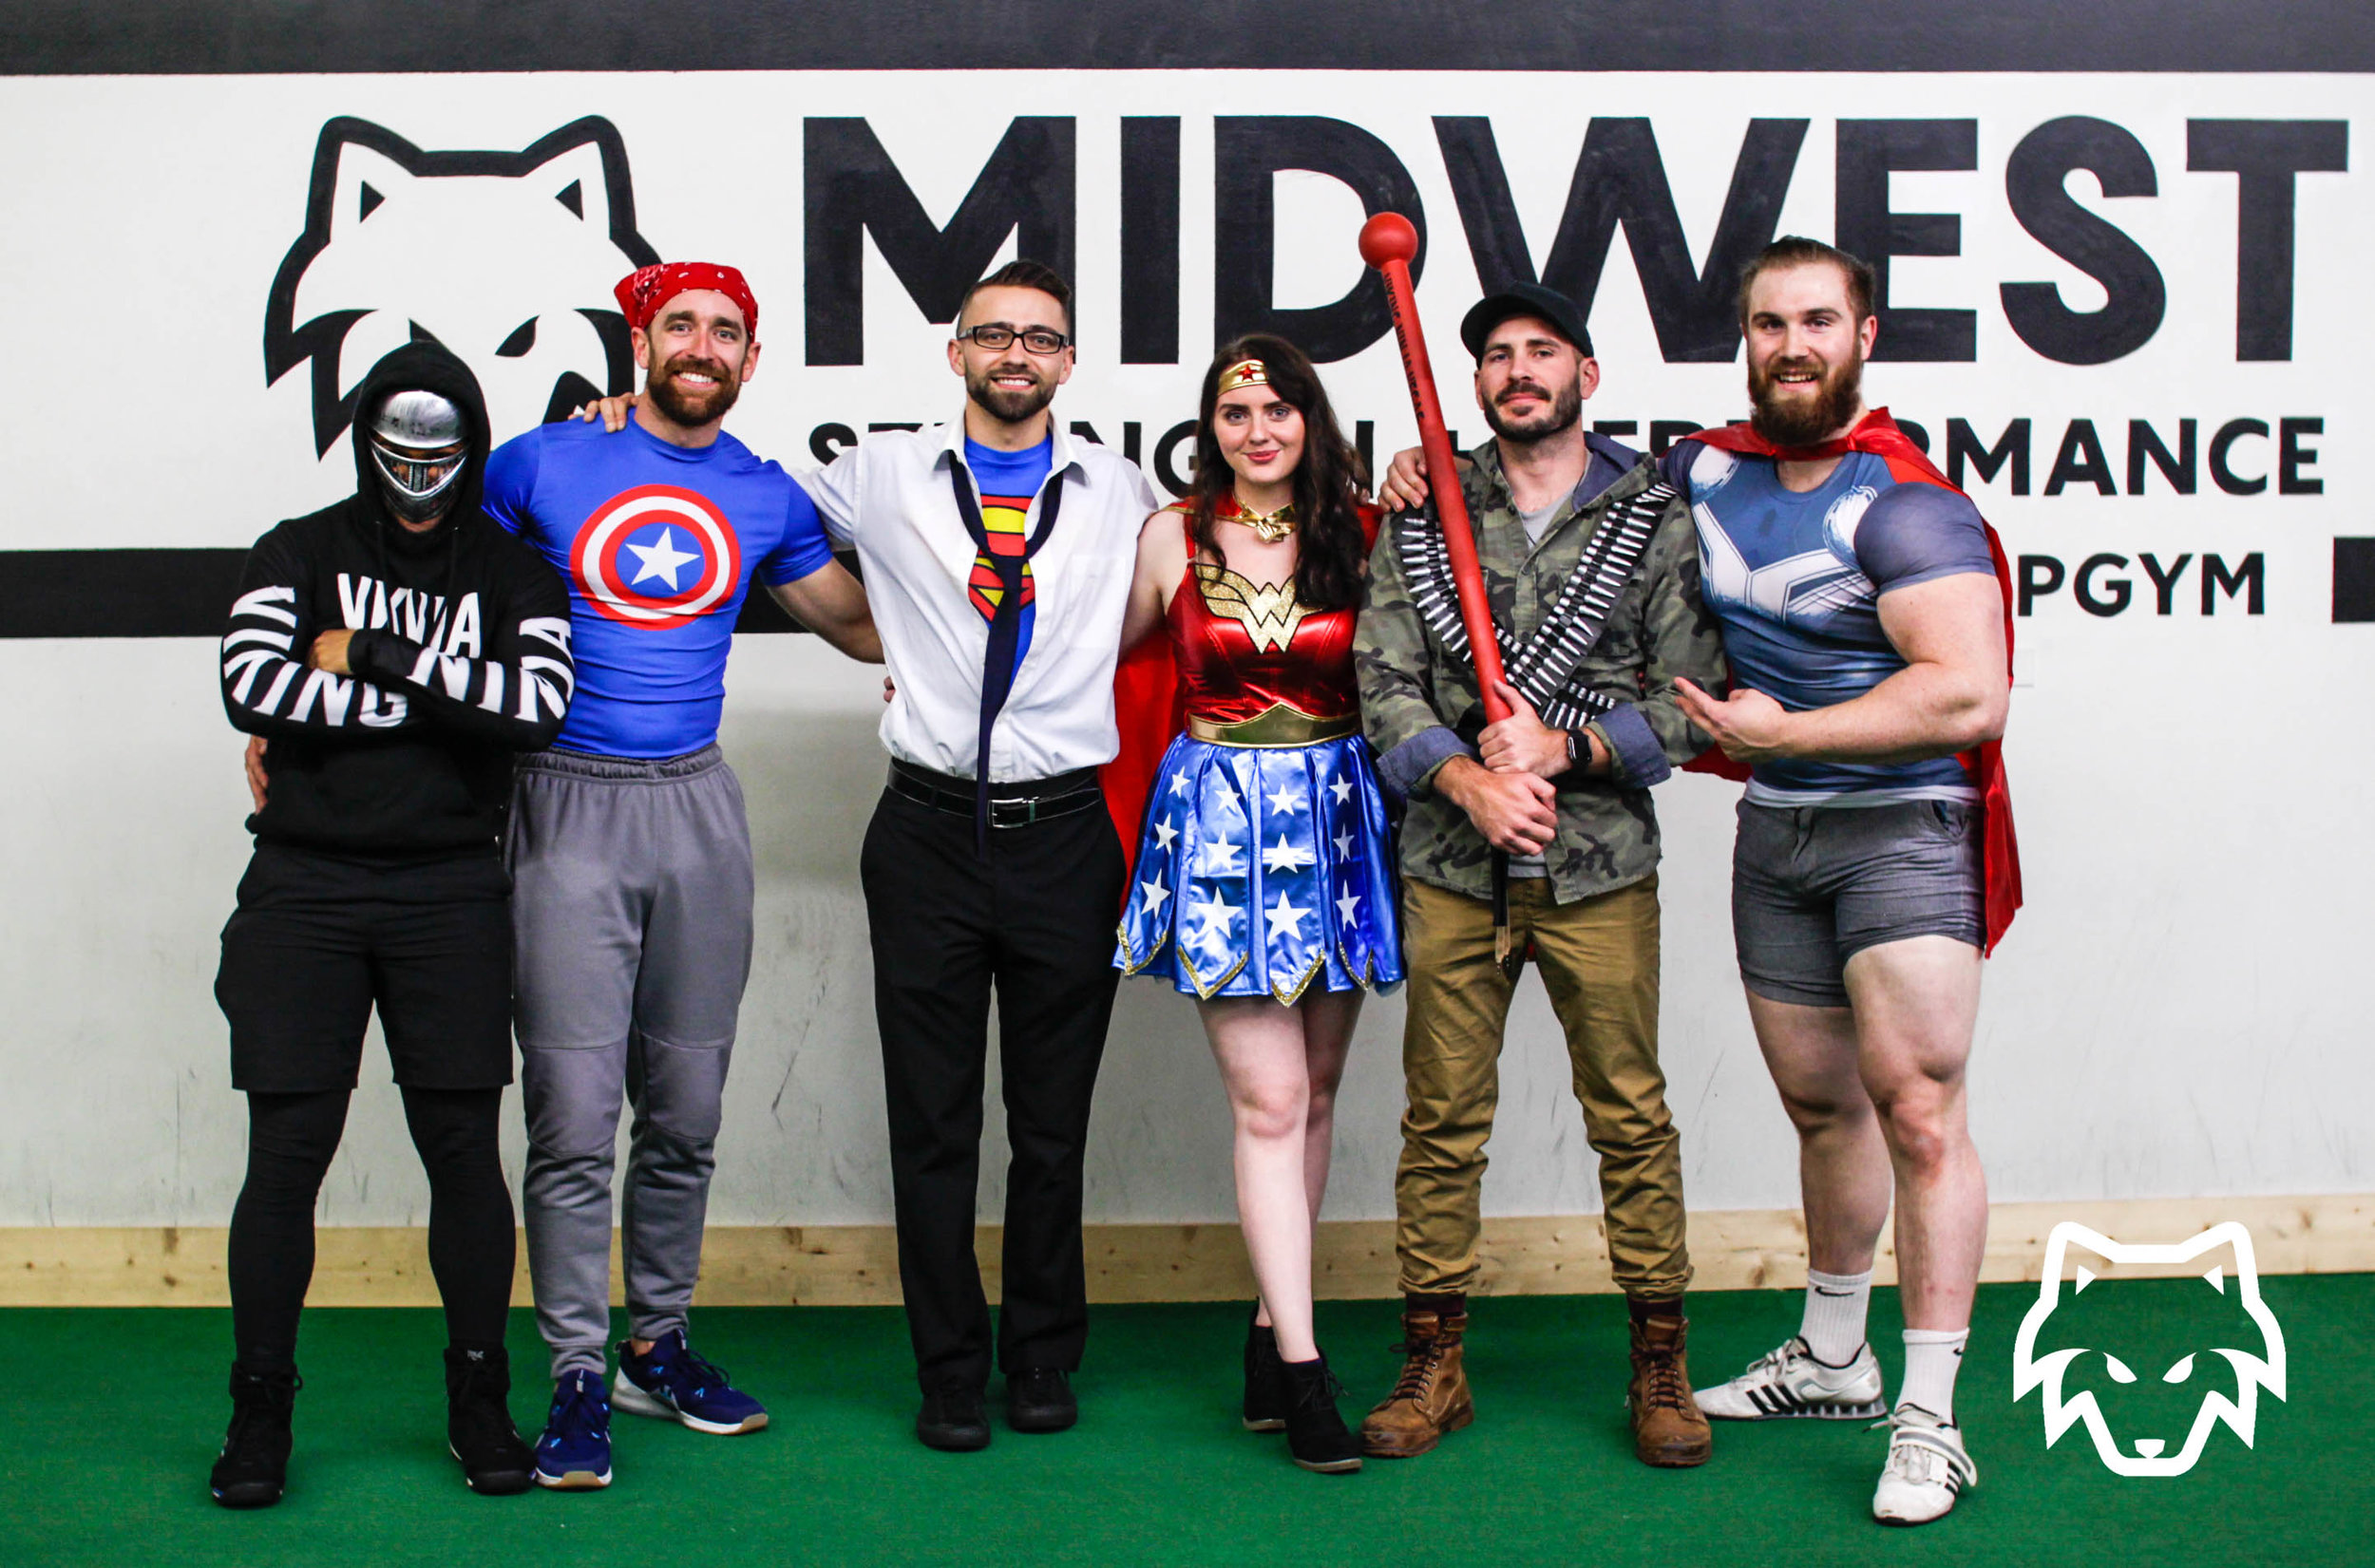 Midwest-Strength-and-Performance-Gym-West-Chicago